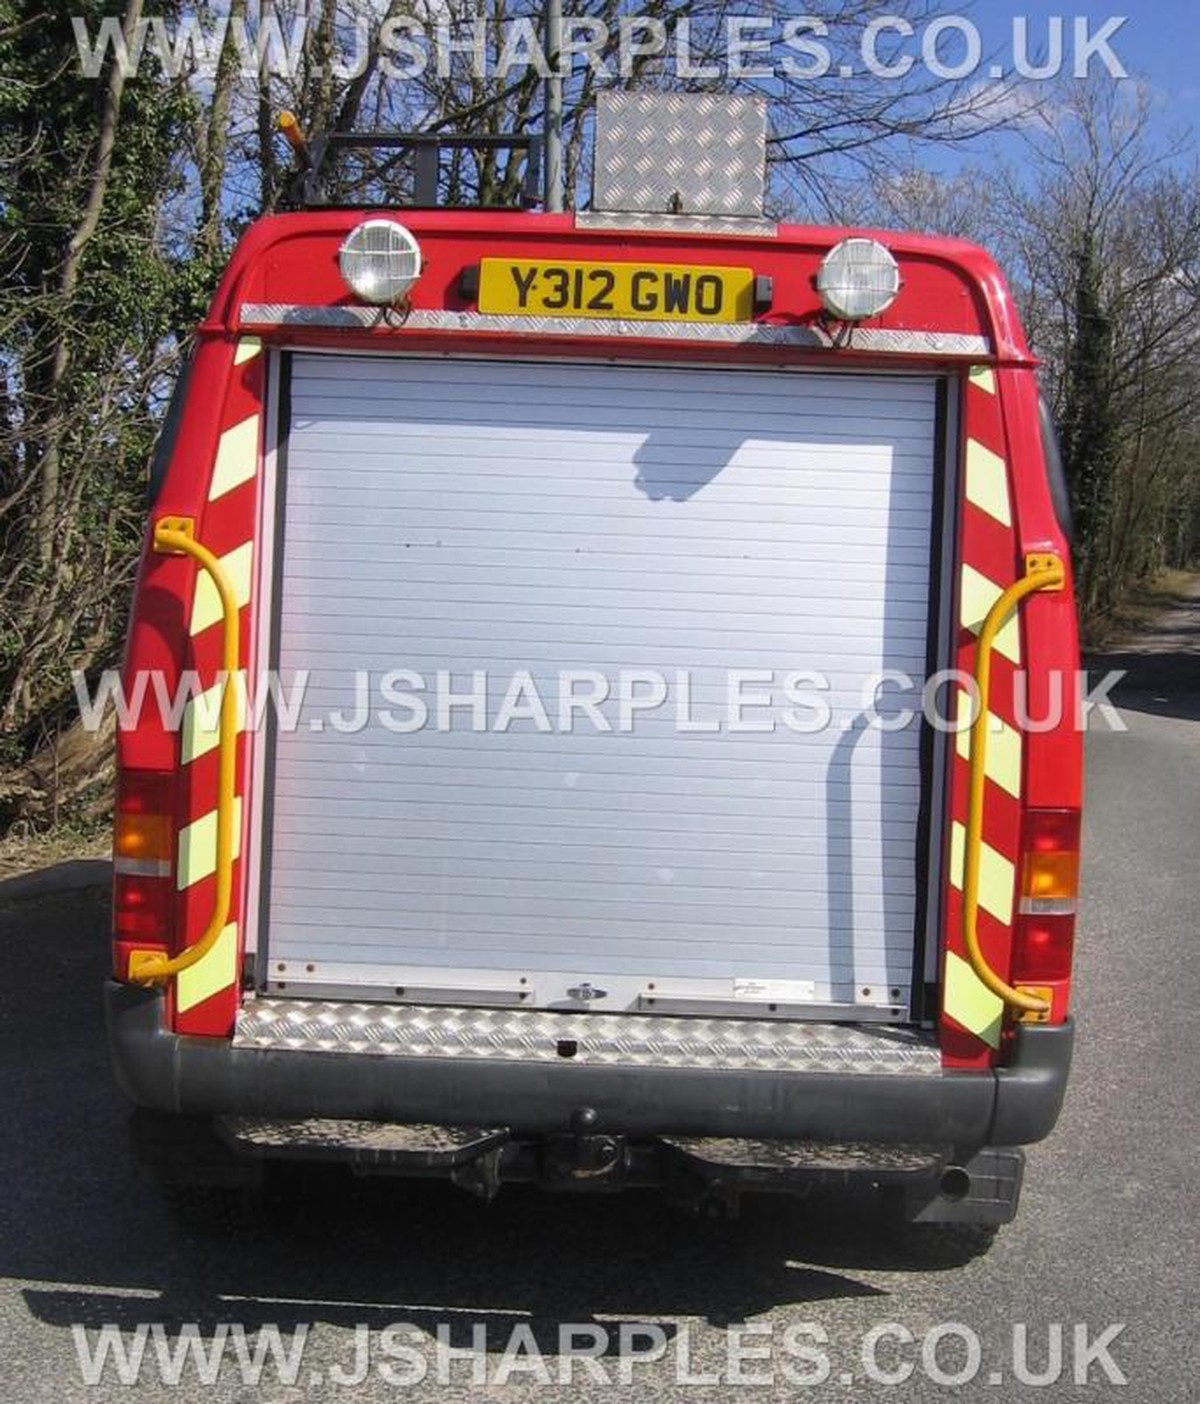 Swiss Vans Large Uk Ford: Ford Transit 4x4 Van County Direct Fire Service